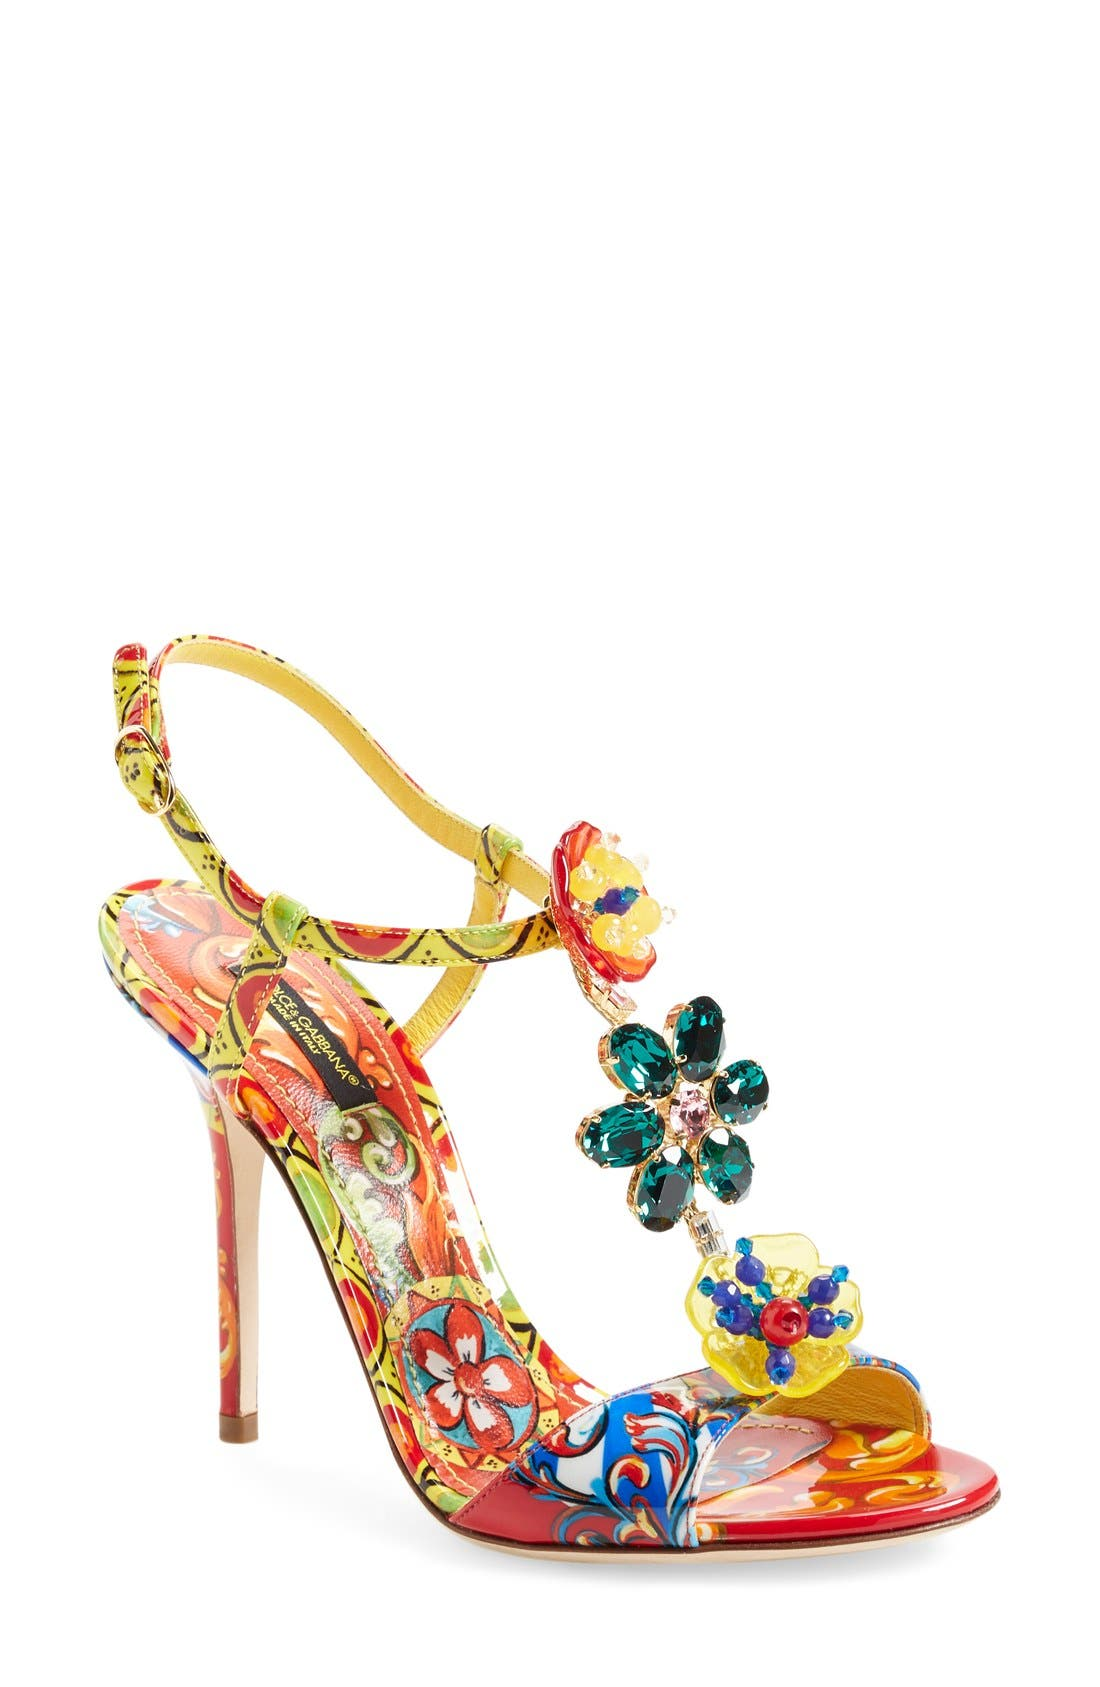 Alternate Image 1 Selected - Dolce&Gabbana Jeweled T-Strap Sandal (Women)